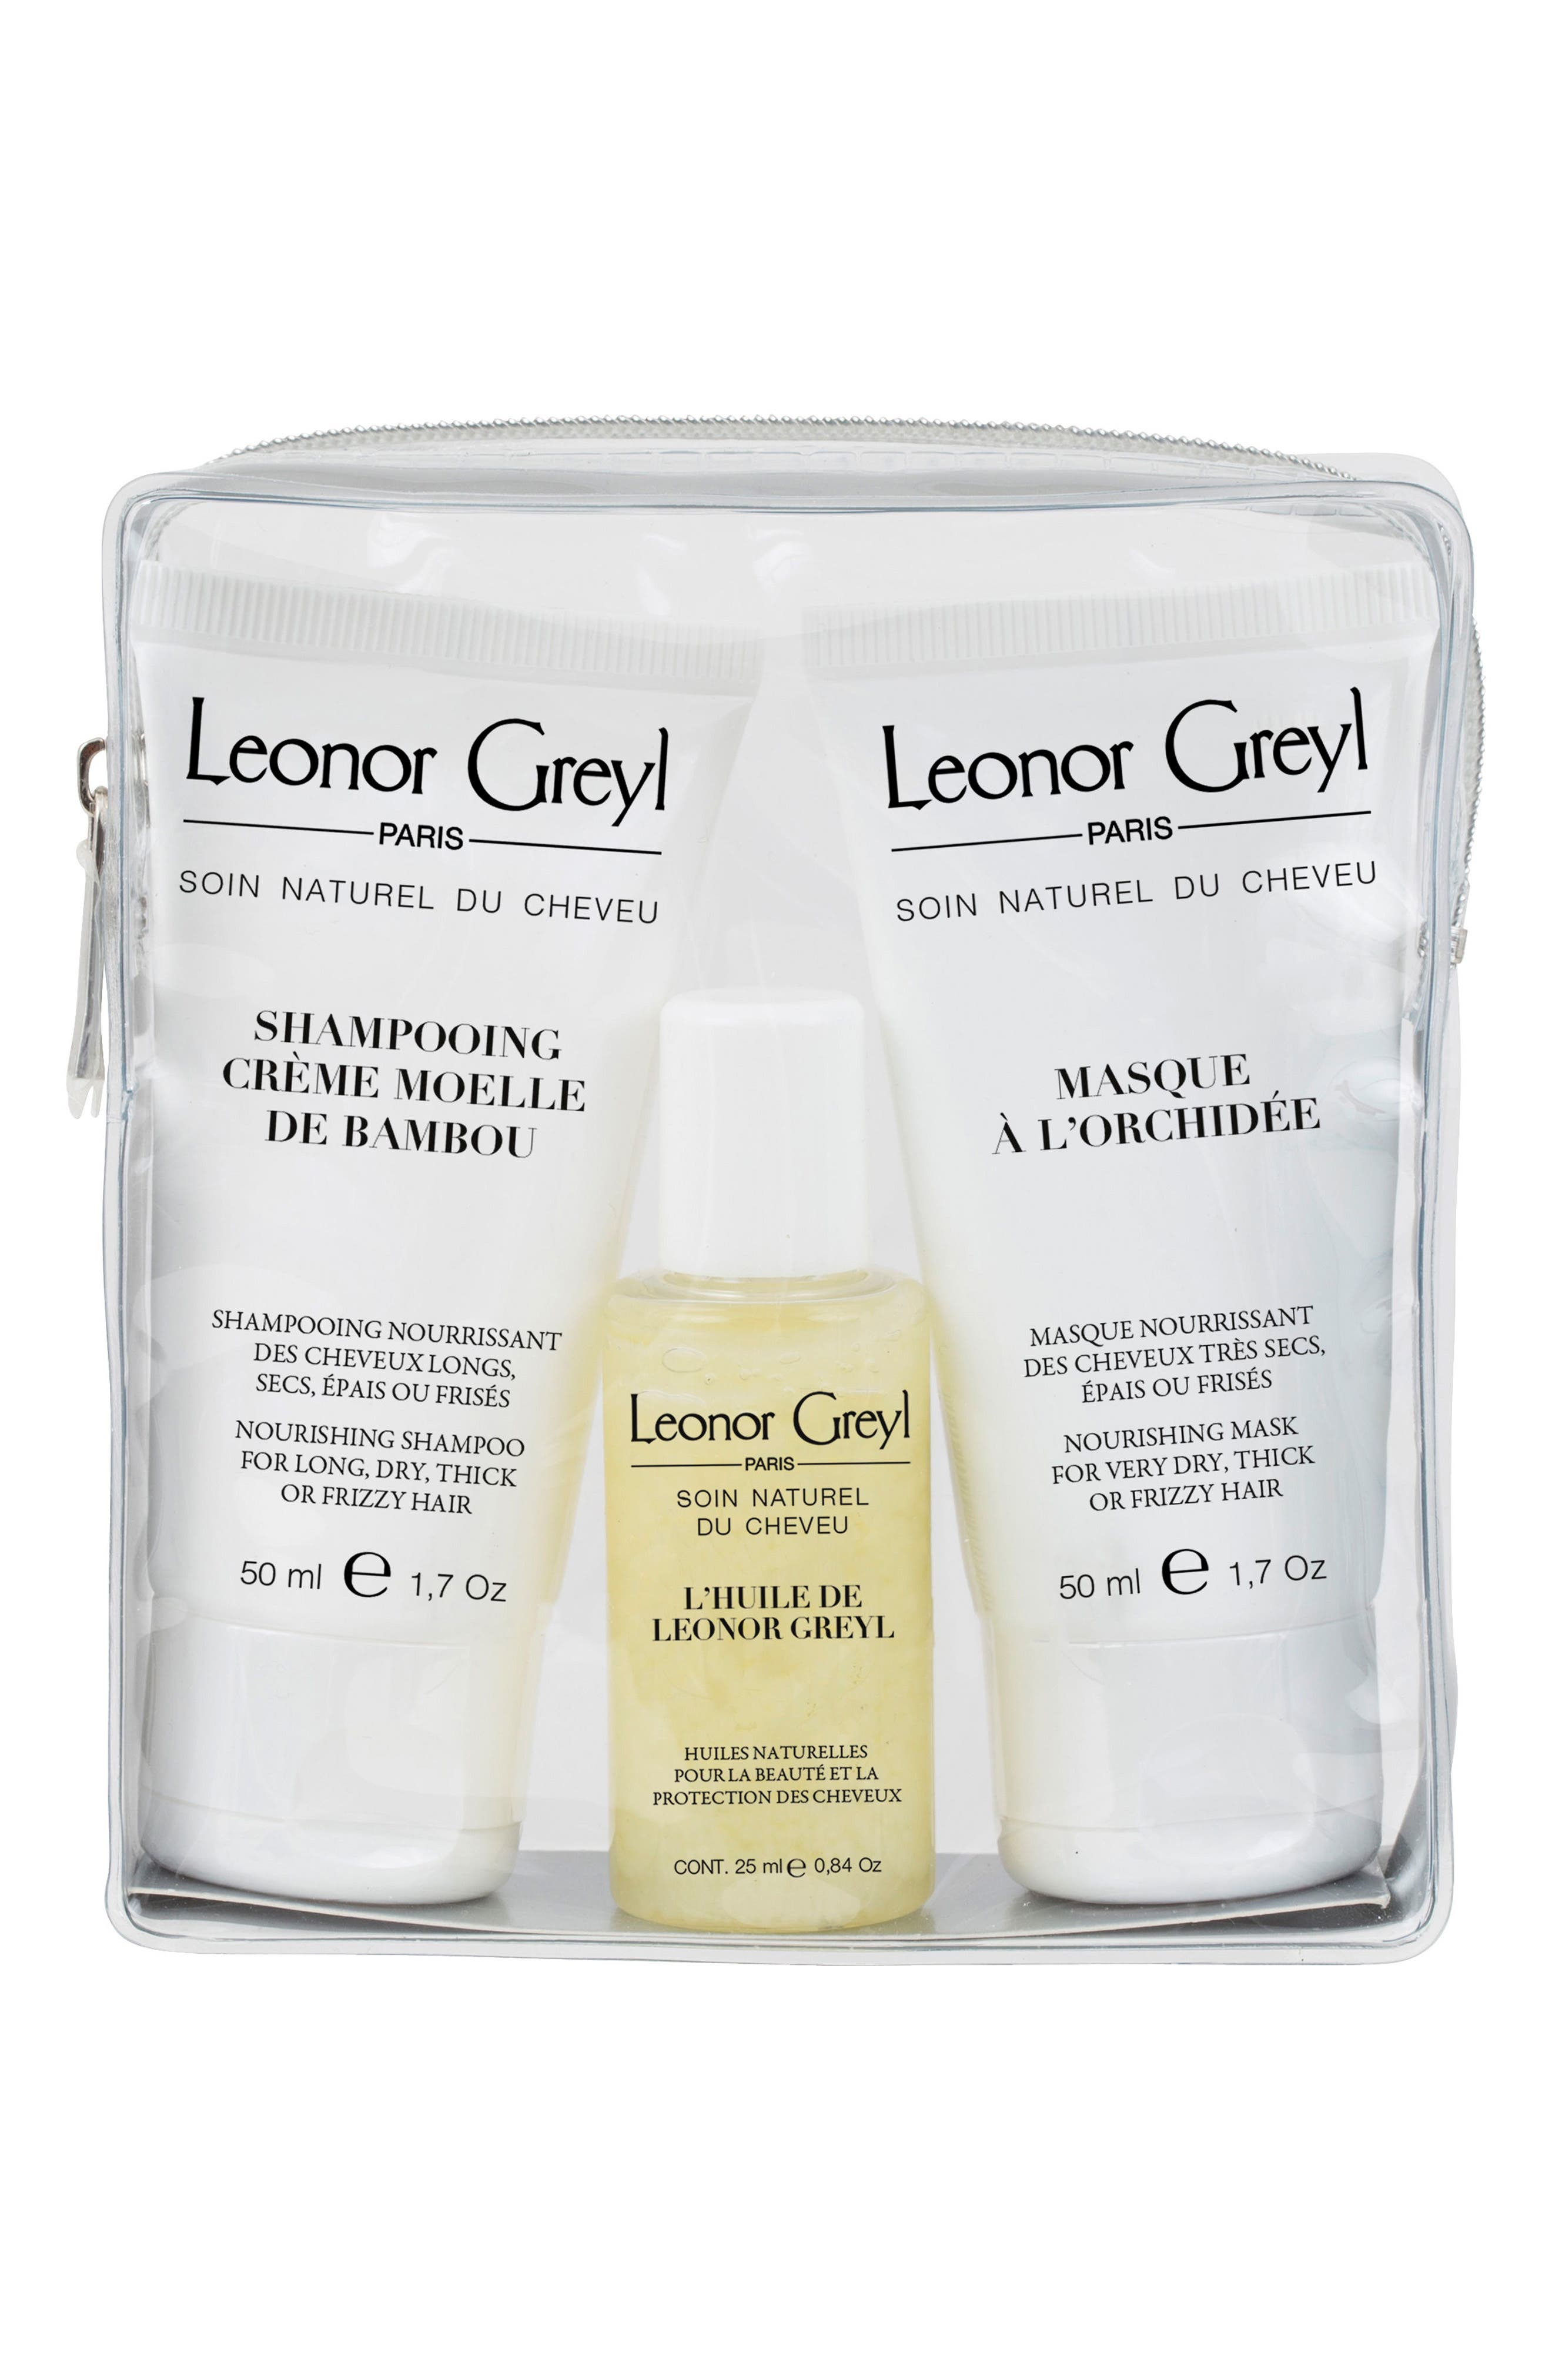 Leonor Greyl PARIS Luxury Travel Kit for Very Dry, Thick or Curly Hair